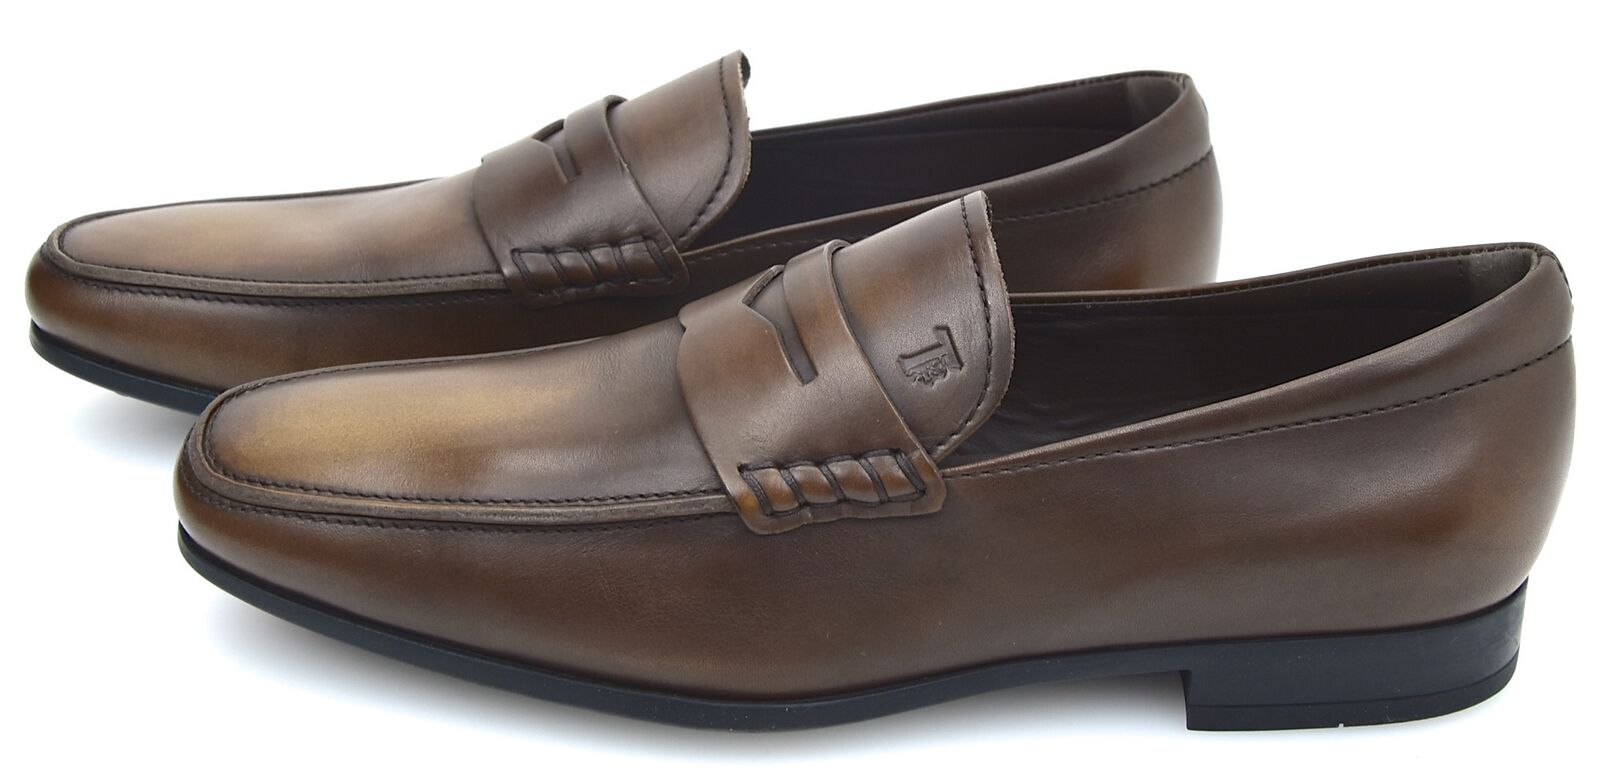 TOD'S MAN BUSINESS CLASSIC LOAFERS FORMAL DRESS chaussures LEATHER XXM0QO00010SADS800